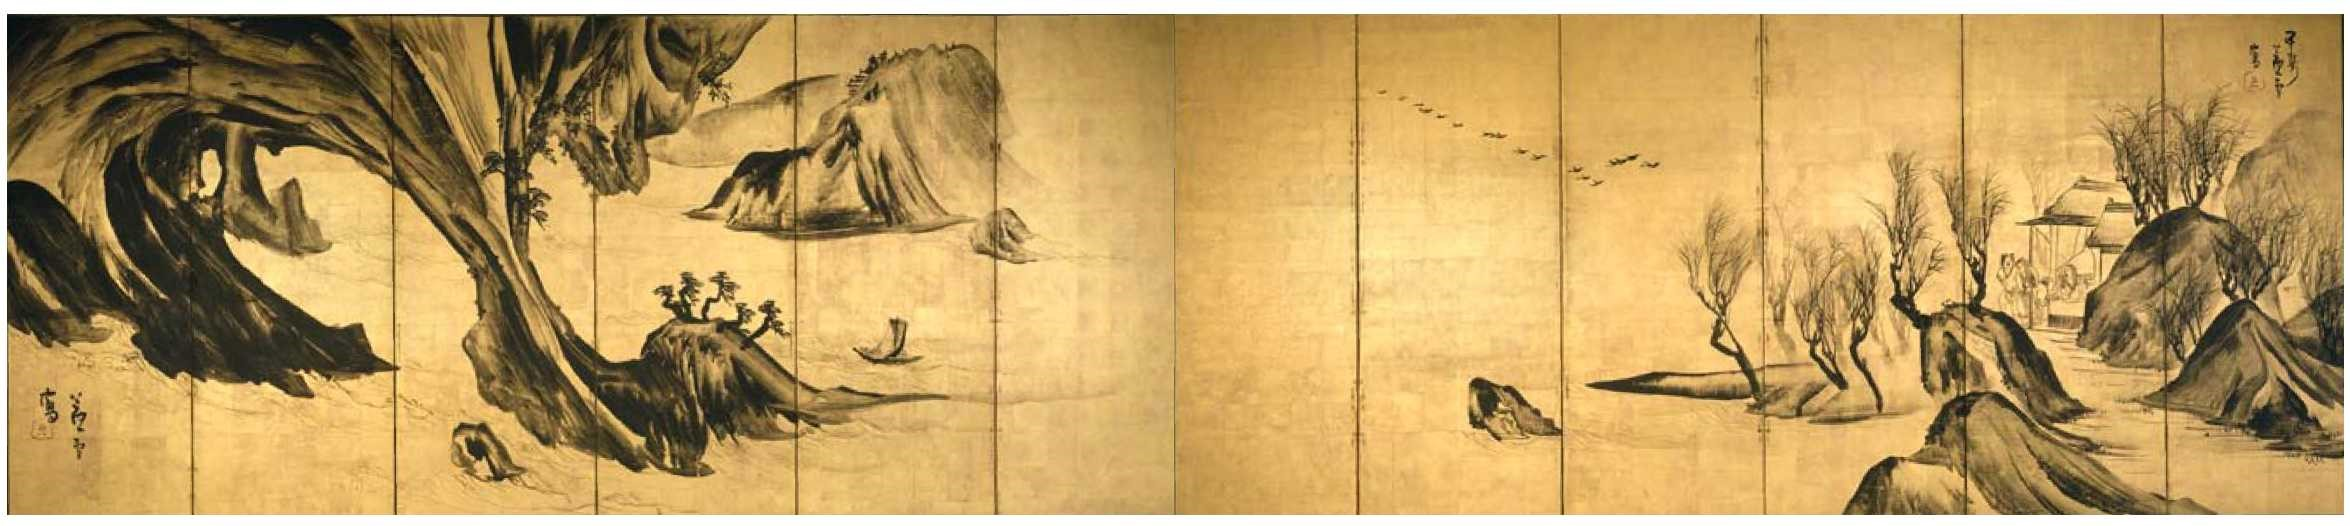 Landscapes with the Chinese Literati Su Shi and Tao Qian - Rosetsu